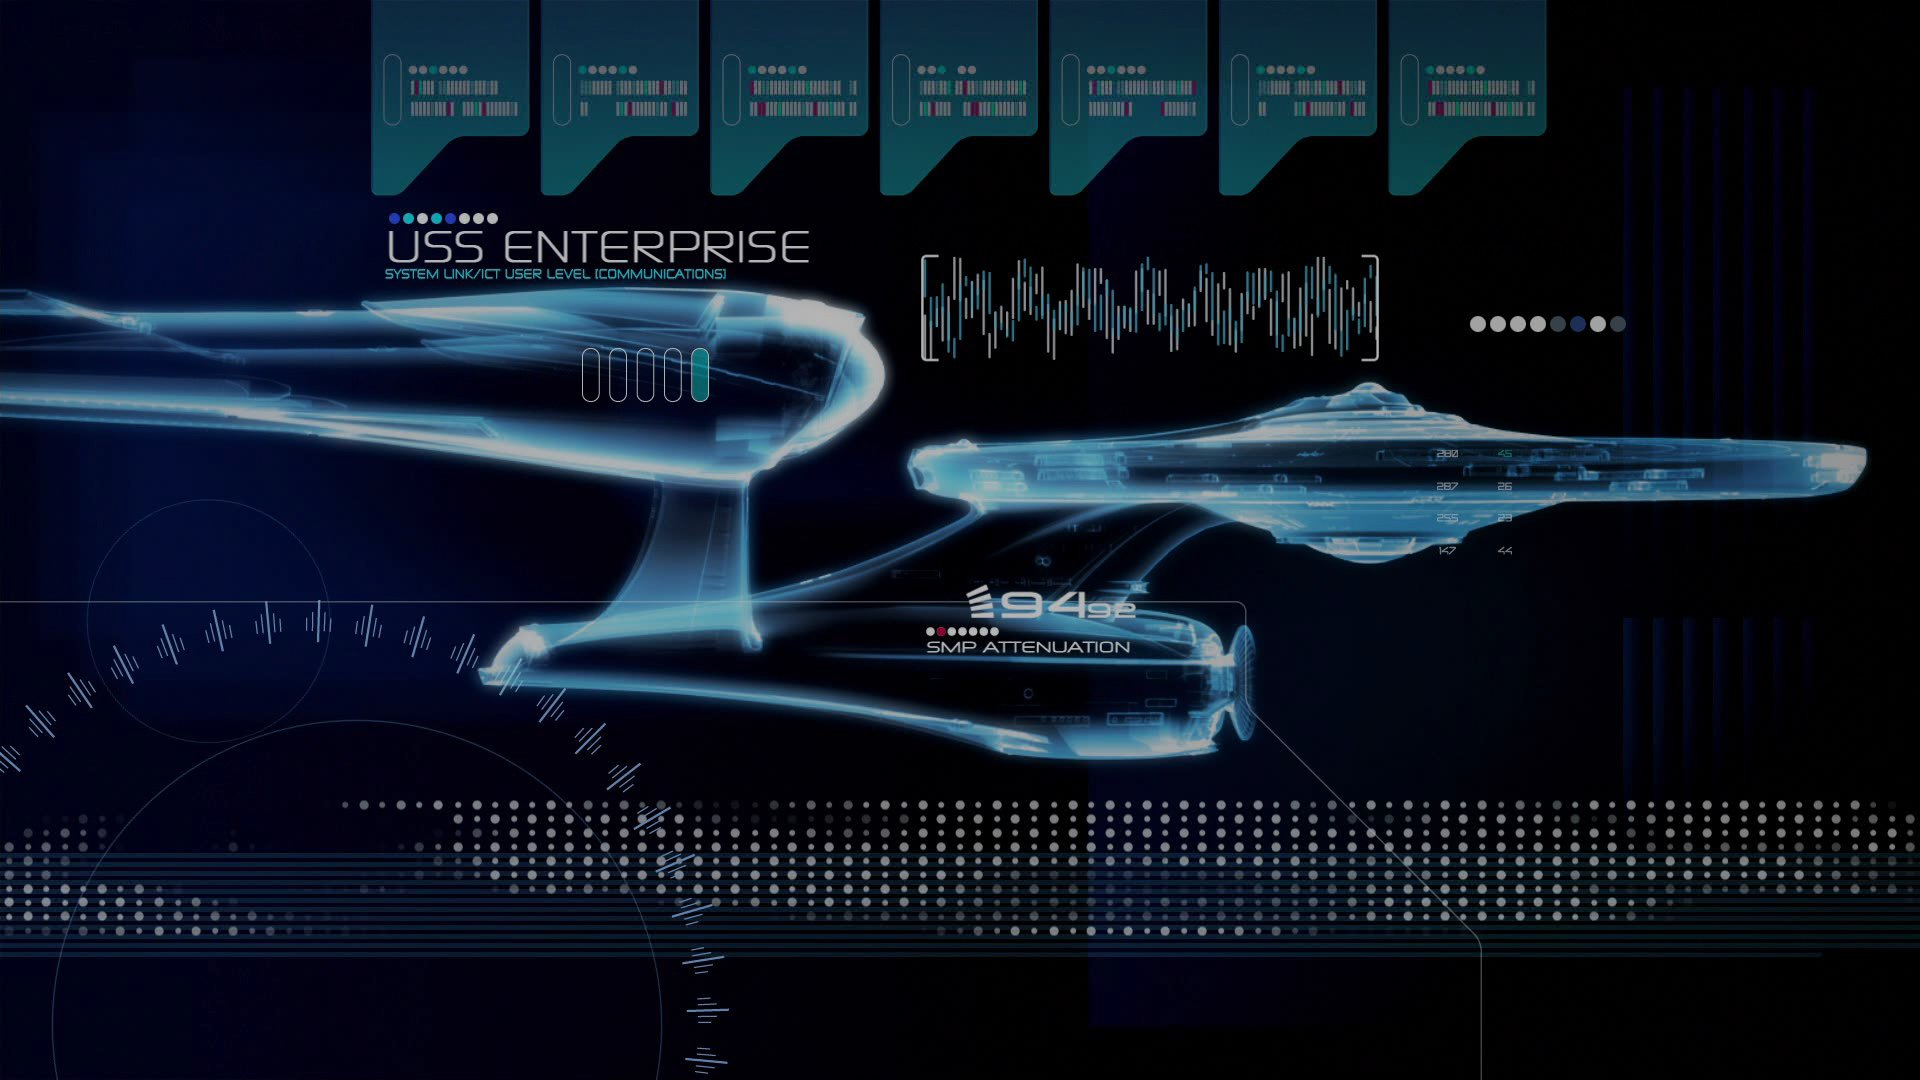 Screen Saver Dream Explore Enterprise wallpapers HD   172350 1920x1080